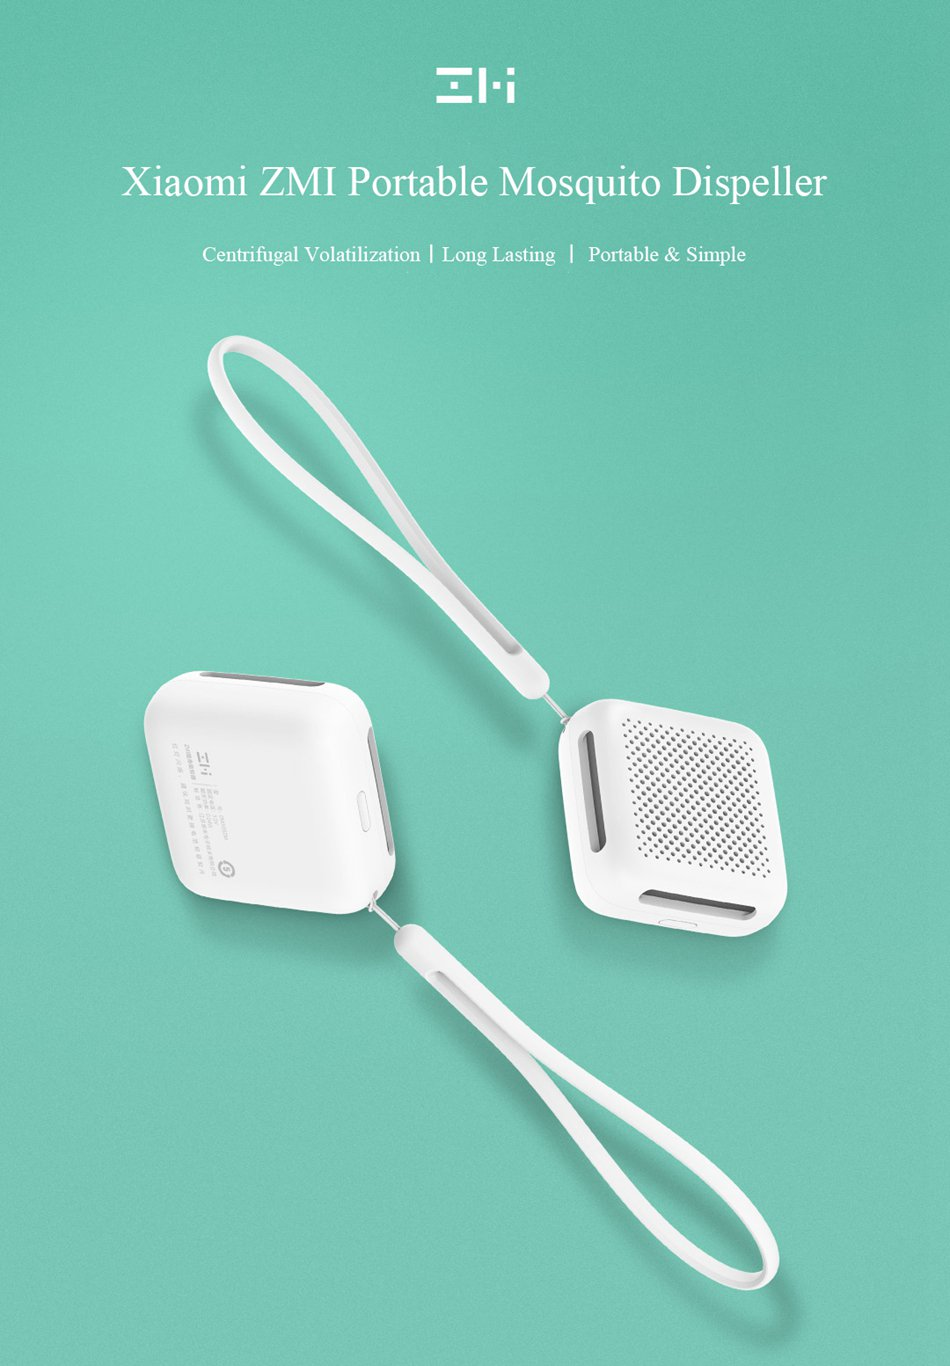 XIAOMI Mosquito Repeller Portable Indoor, Outdoor, Travel, Camping etc - Battery Operated